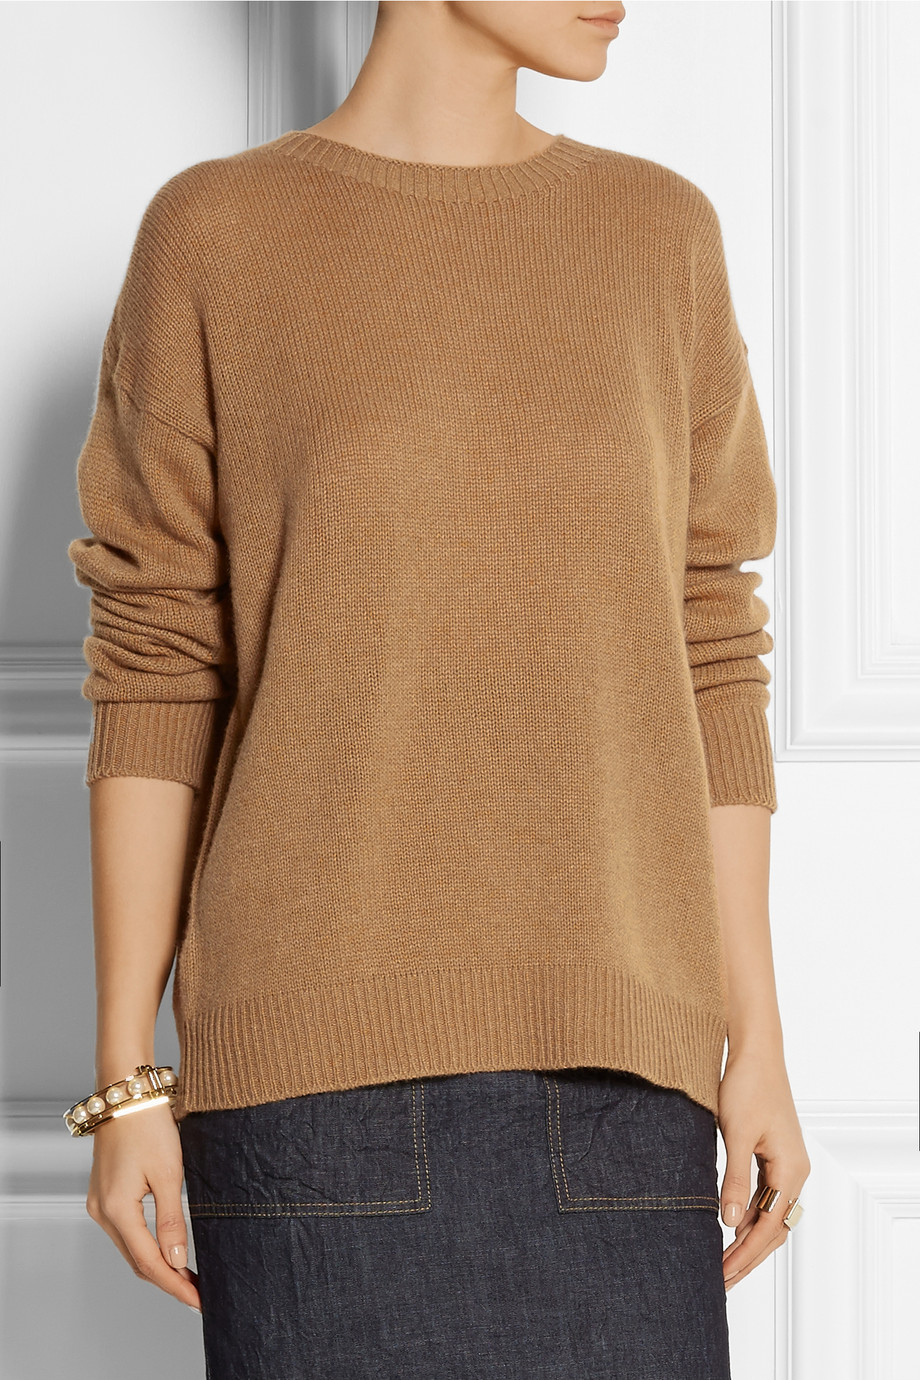 Marni Cashmere Sweater in Brown | Lyst